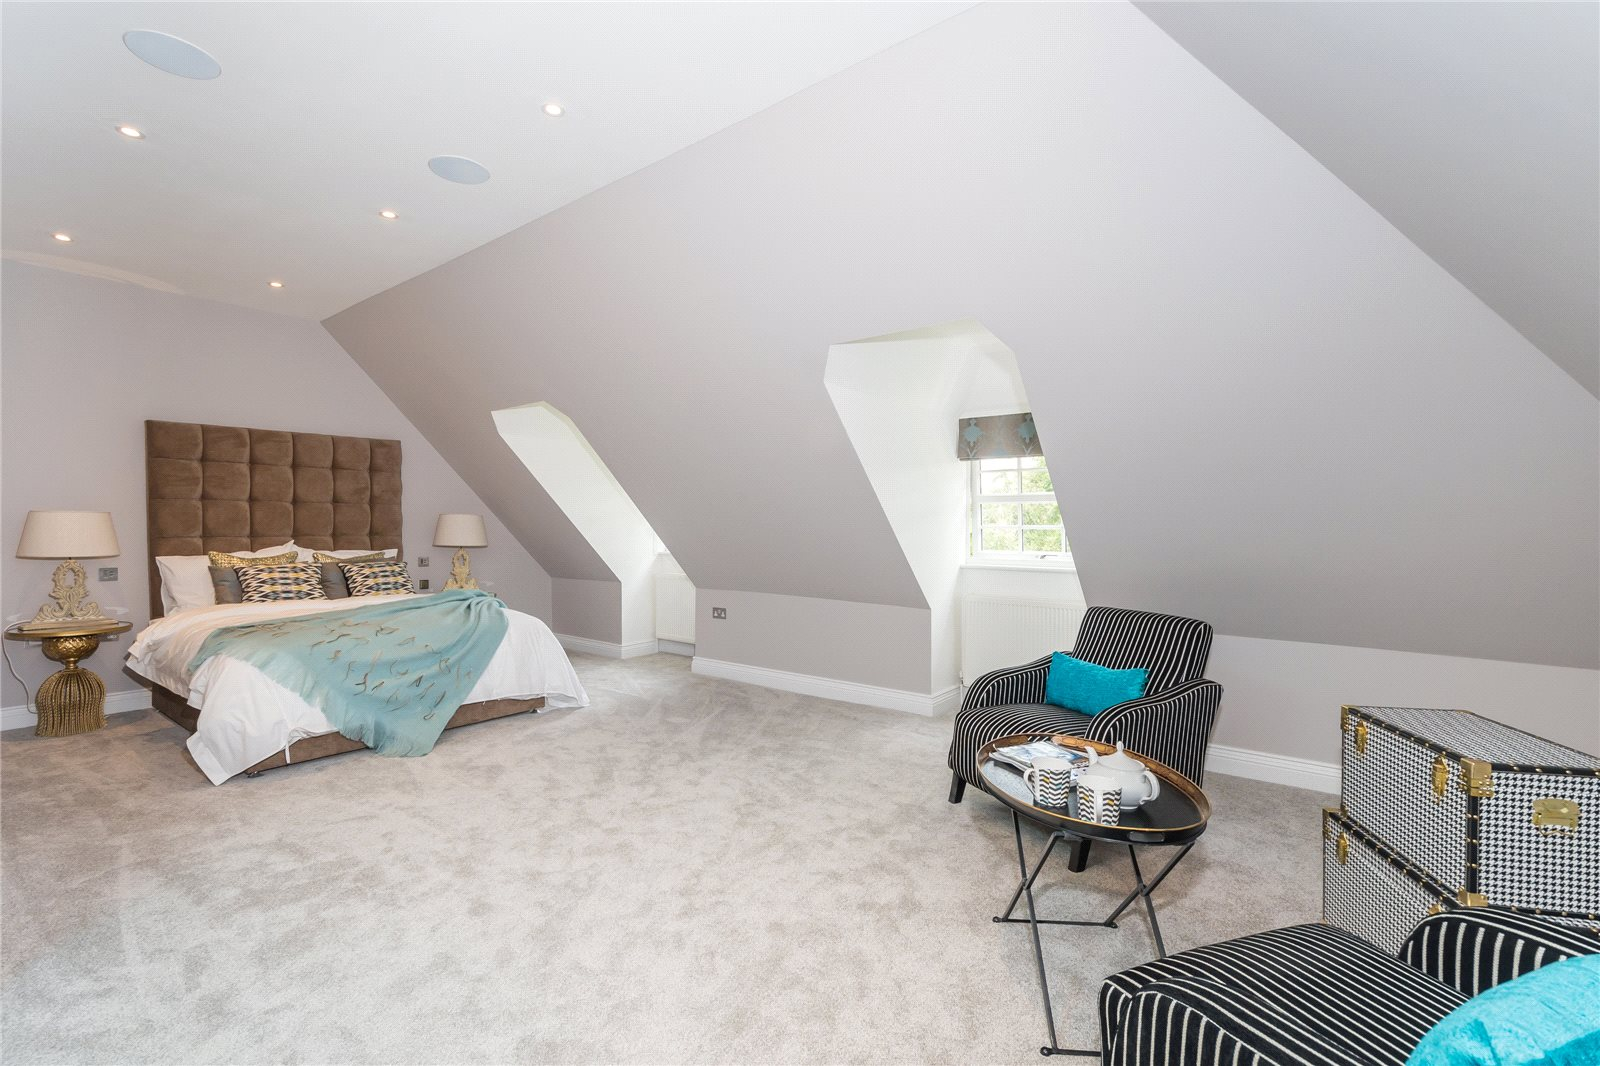 Additional photo for property listing at Coombe Vale, Gerrards Cross, Buckinghamshire, SL9 Gerrards Cross, Angleterre